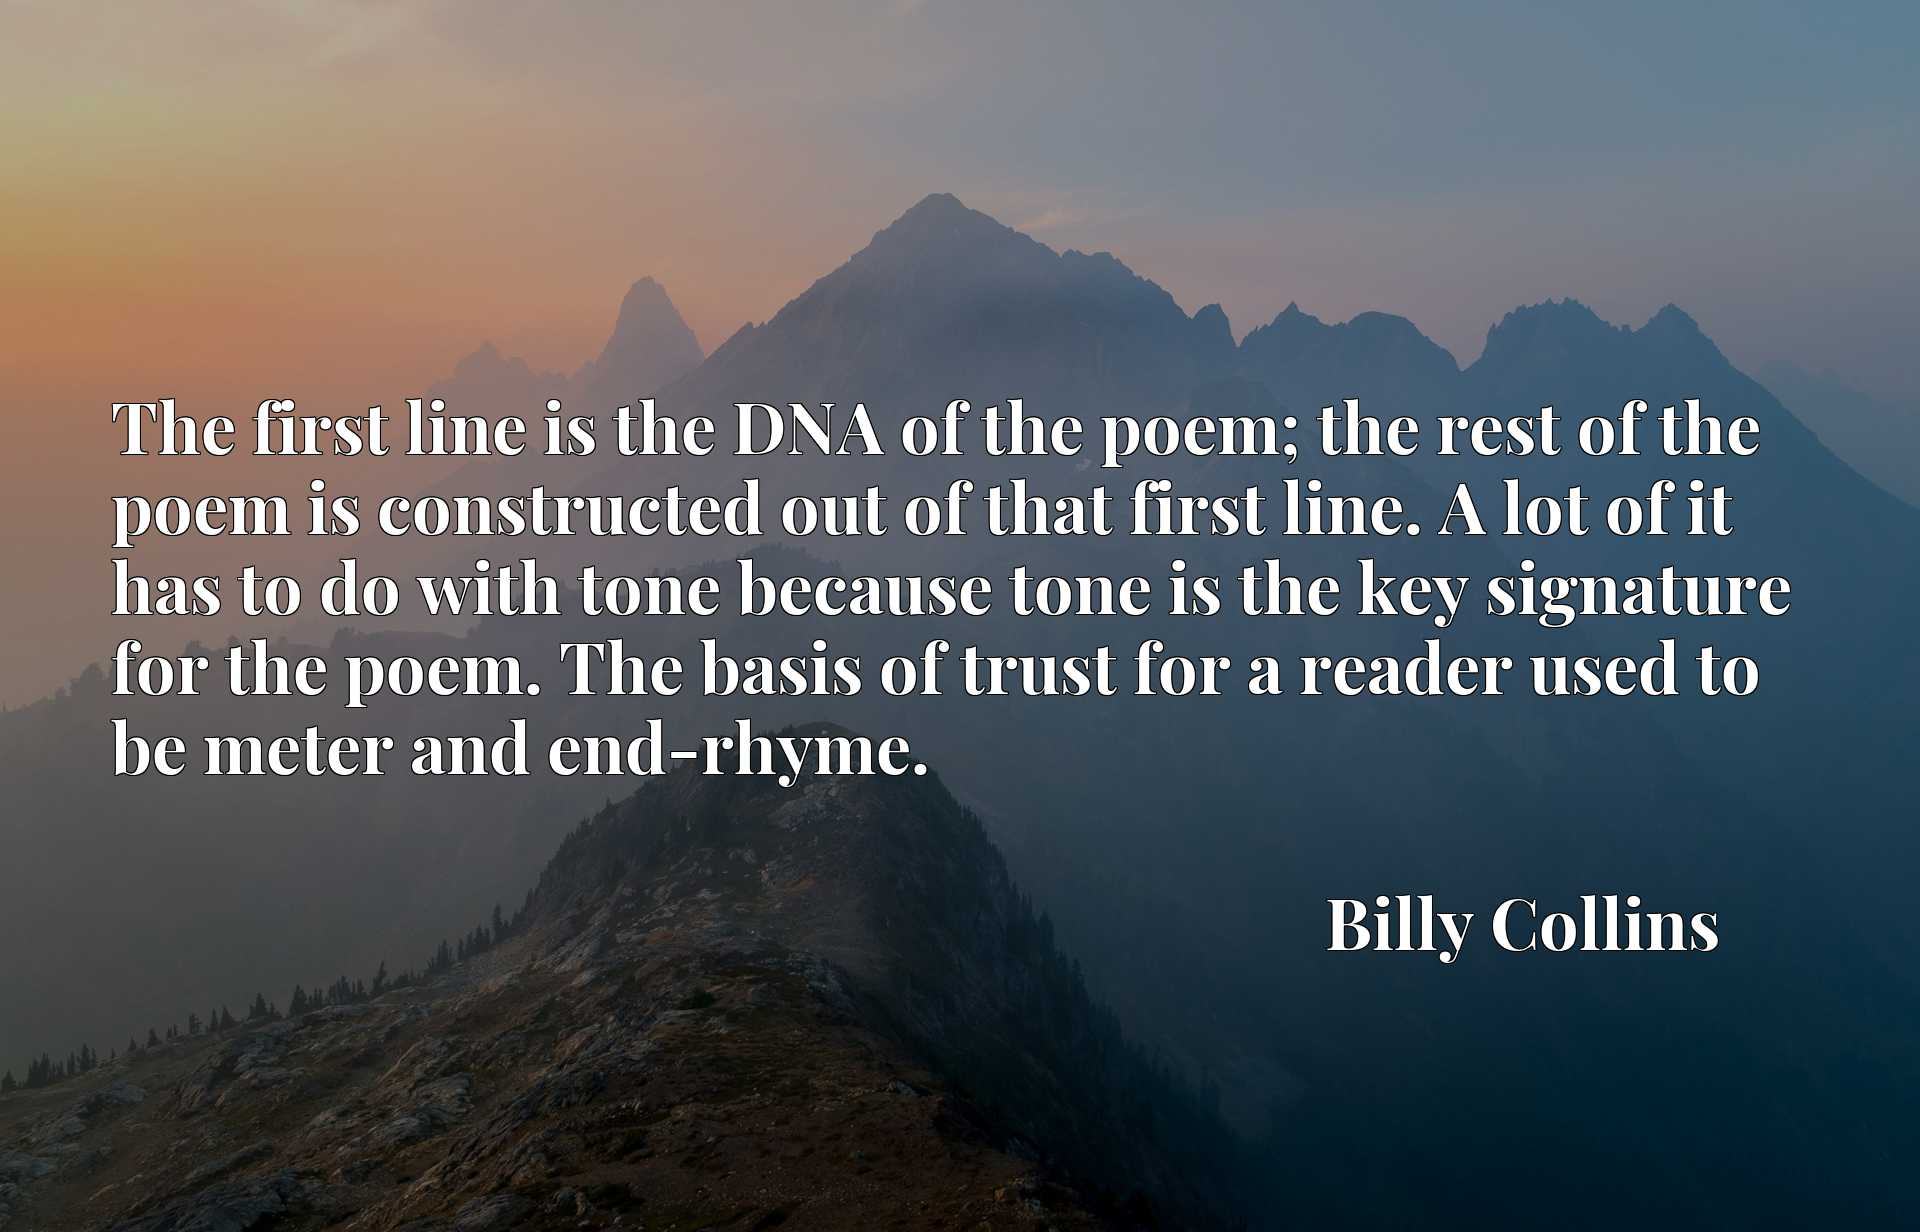 The first line is the DNA of the poem; the rest of the poem is constructed out of that first line. A lot of it has to do with tone because tone is the key signature for the poem. The basis of trust for a reader used to be meter and end-rhyme.